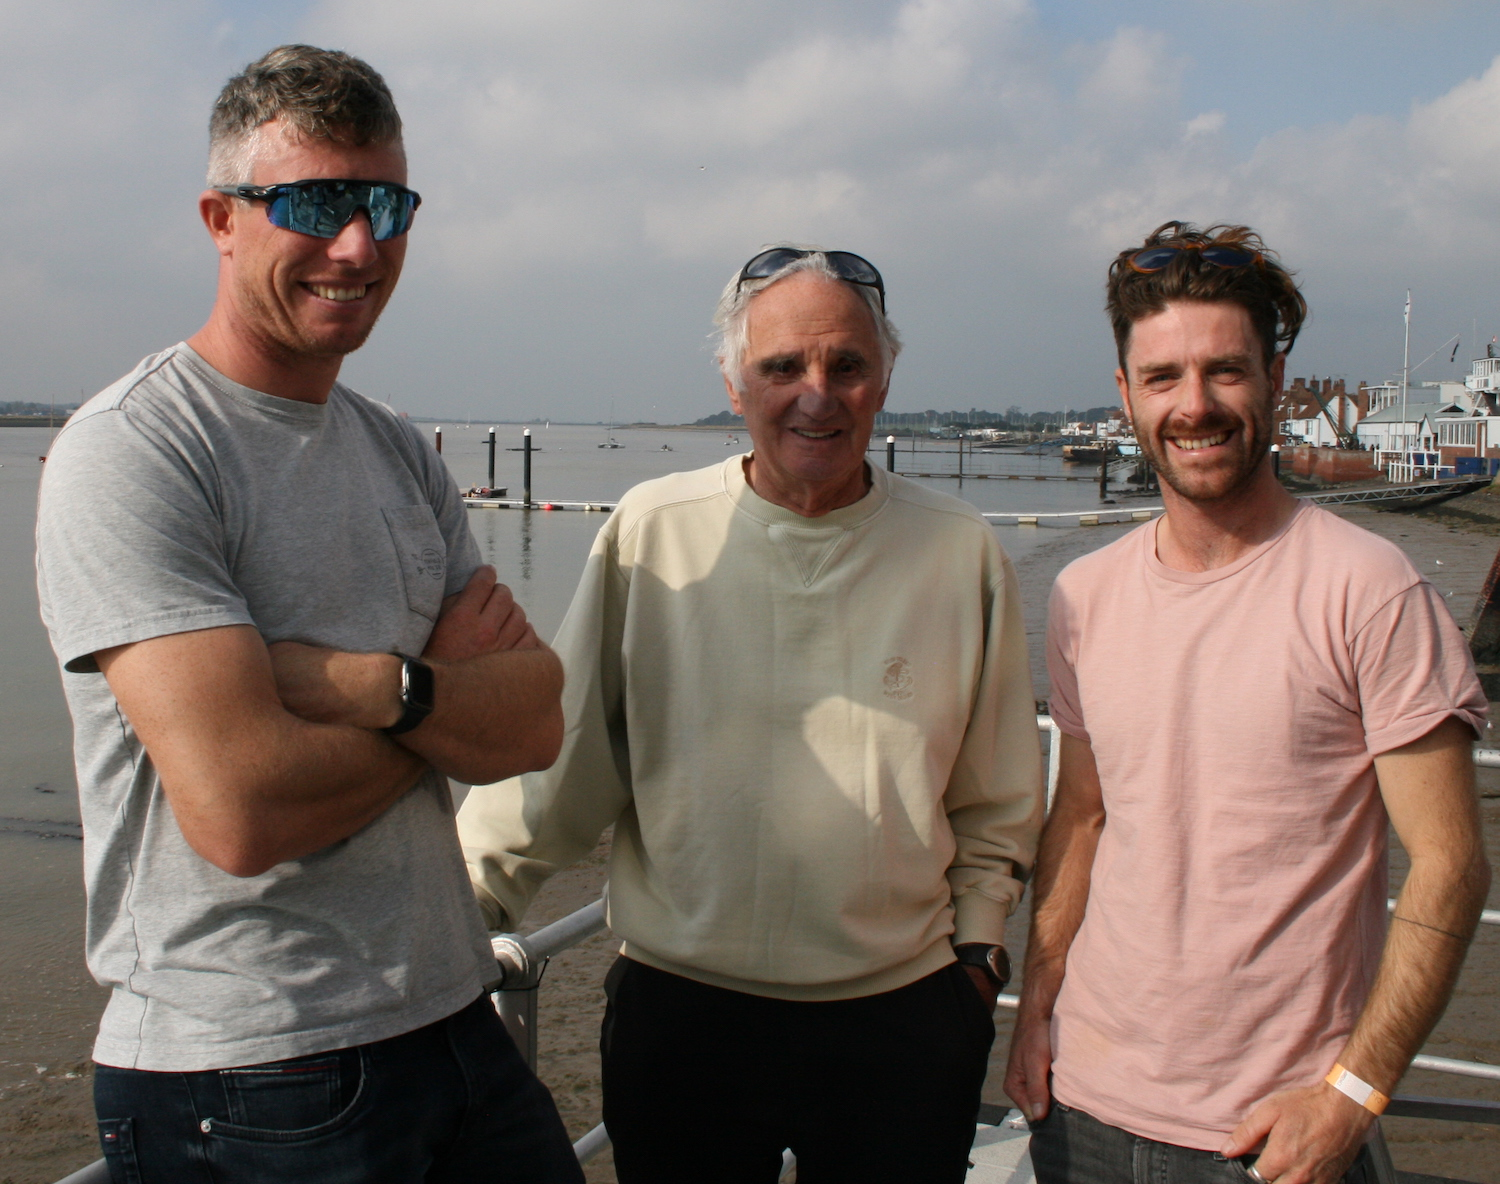 Olympic medallists past and present – Stuart Bithell, Keith Musto, Luke Patience – photo Sue Pelling